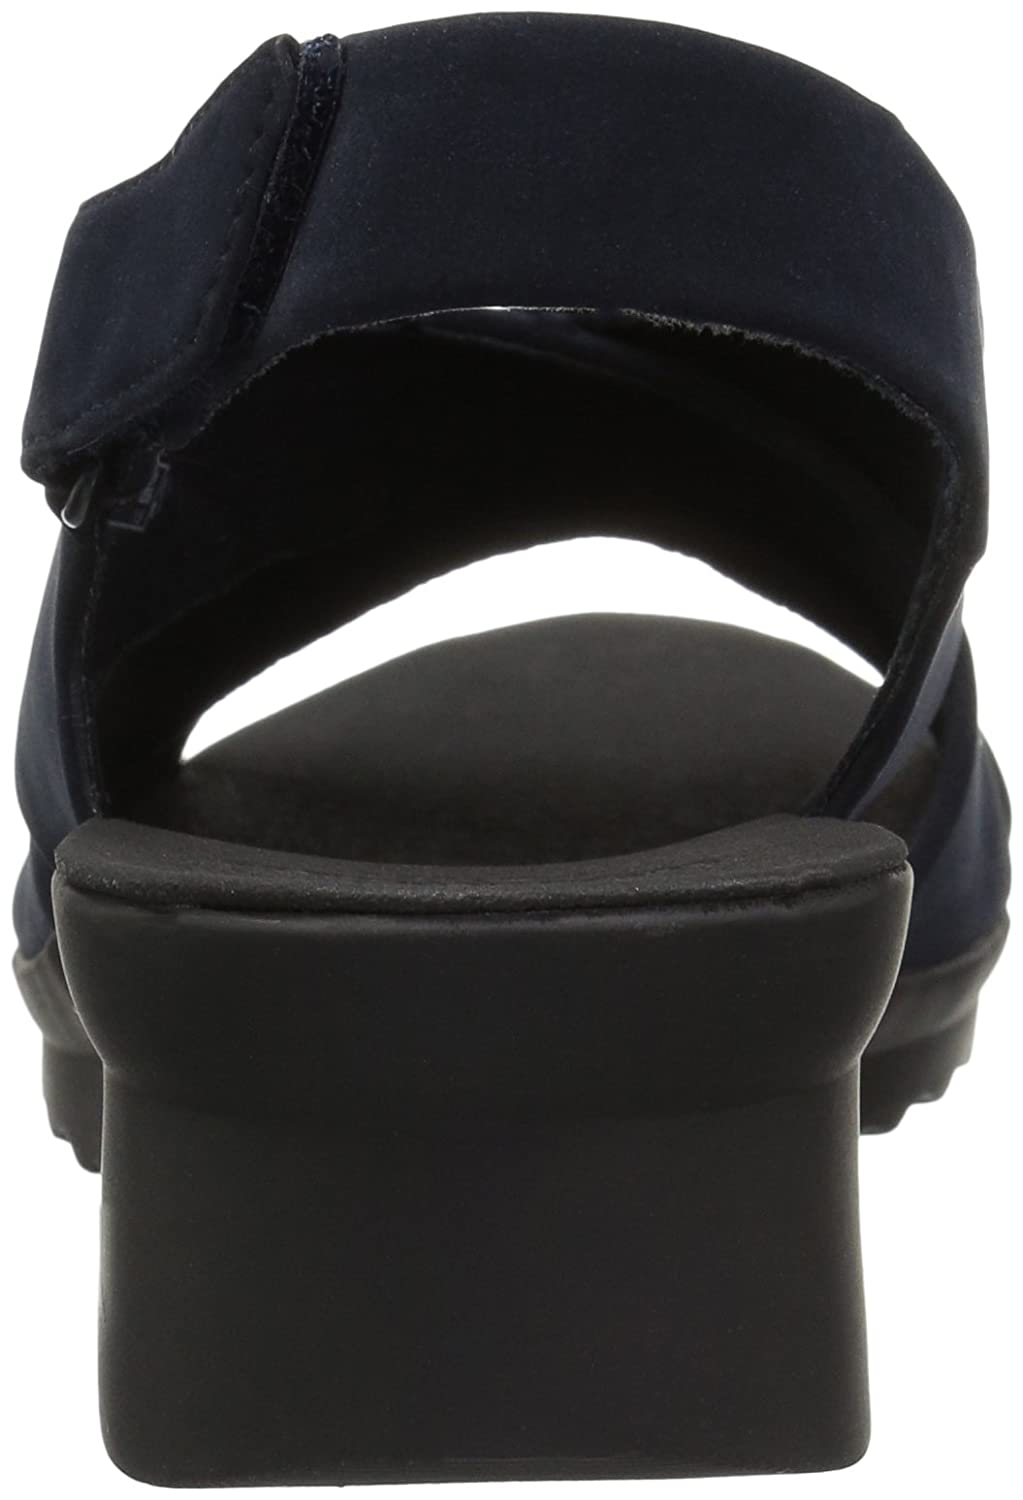 CLARKS Damens's Caddell Petal Platform, Navy Synthetic Nubuck, 6 6 Nubuck, Medium US - 253a17